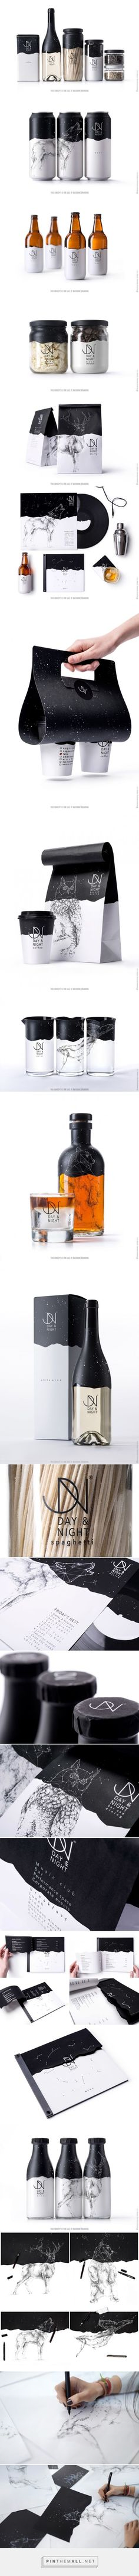 Day & Night packaging designed by Backbone Branding (Armenia)